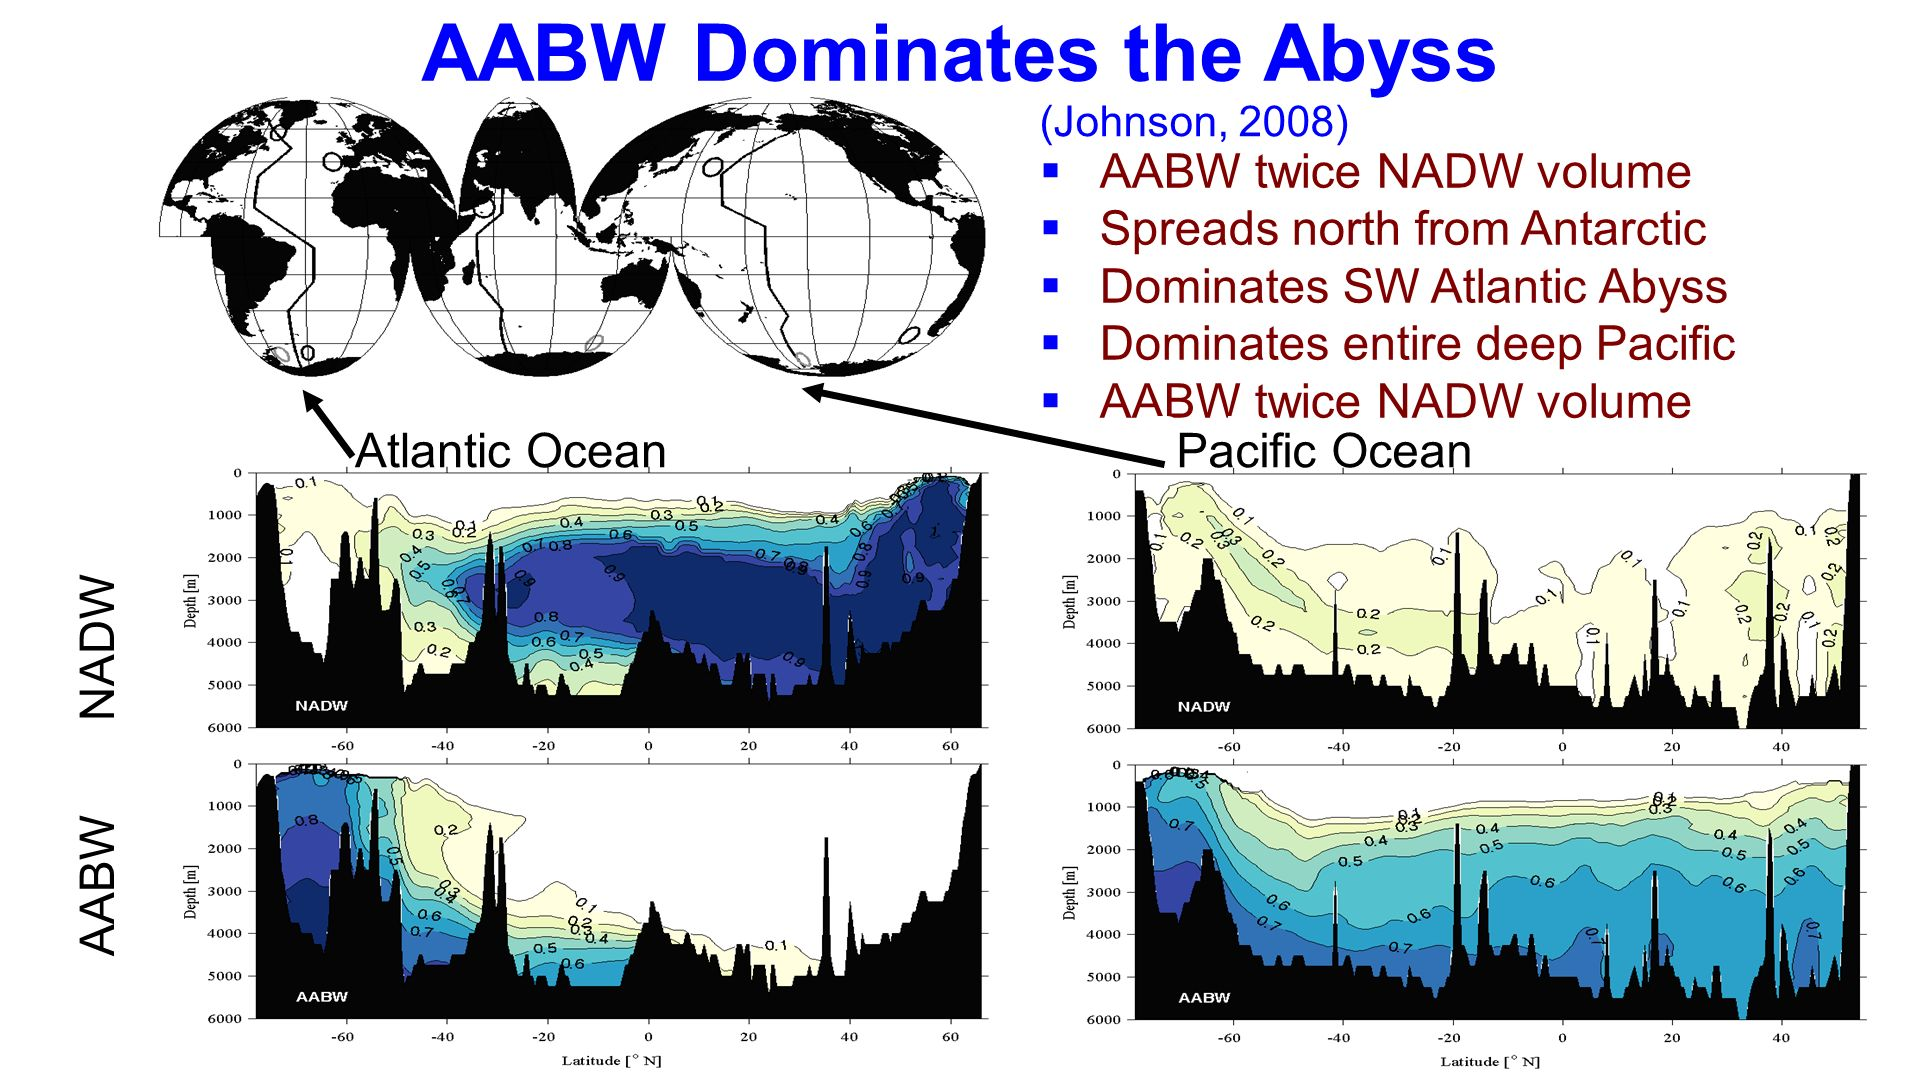 AABW twice NADW volume Spreads north from Antarctic Dominates SW Atlantic Abyss Dominates entire deep Pacific AABW twice NADW volume AABW NADW Atlanti